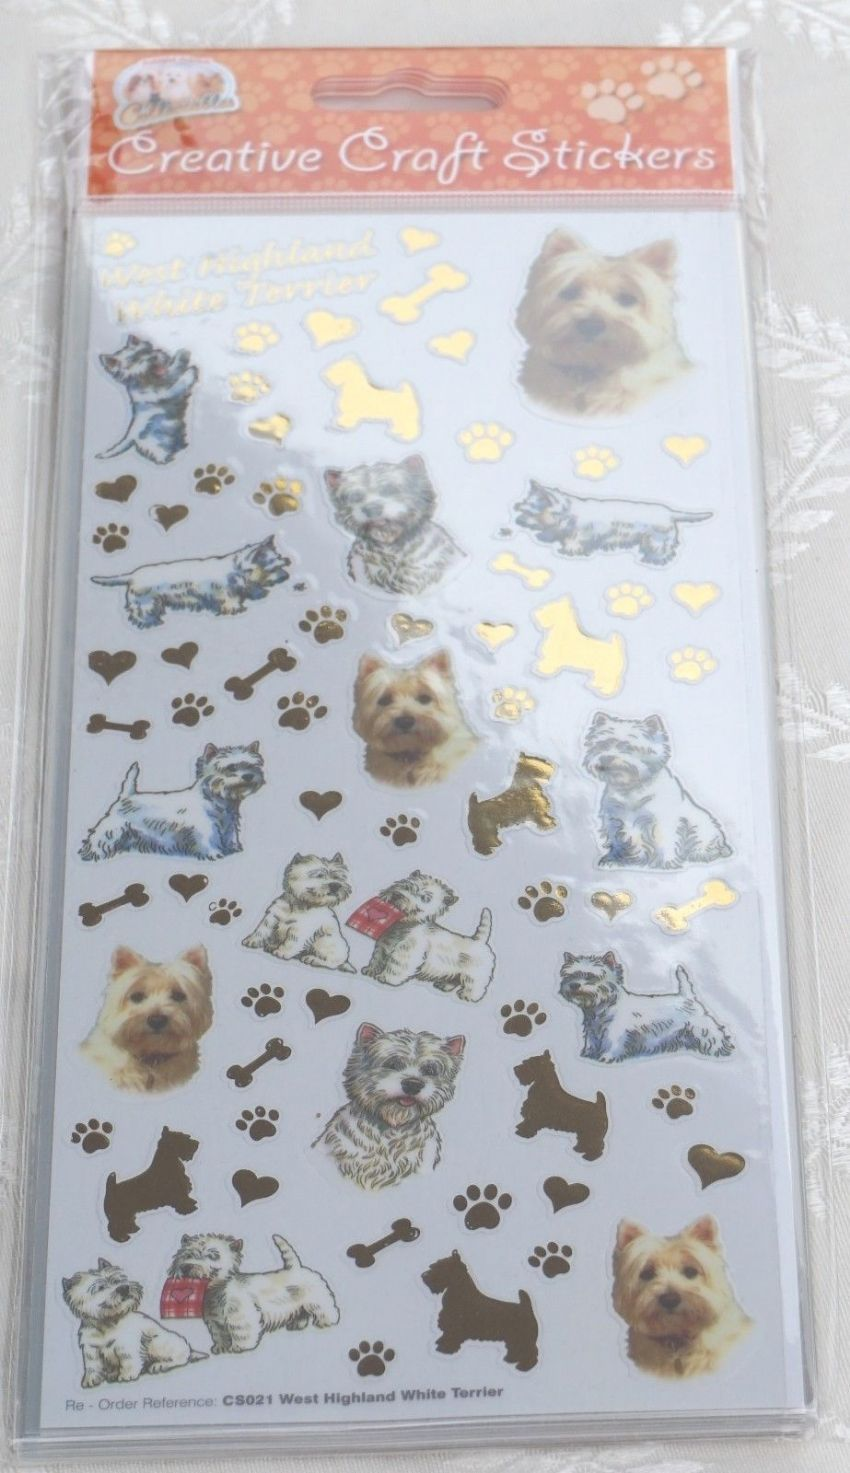 WEST HIGHLAND TERRIER WESTIE CRAFT STICKERS SCRAPBOOKING CARD CRAFT ETC